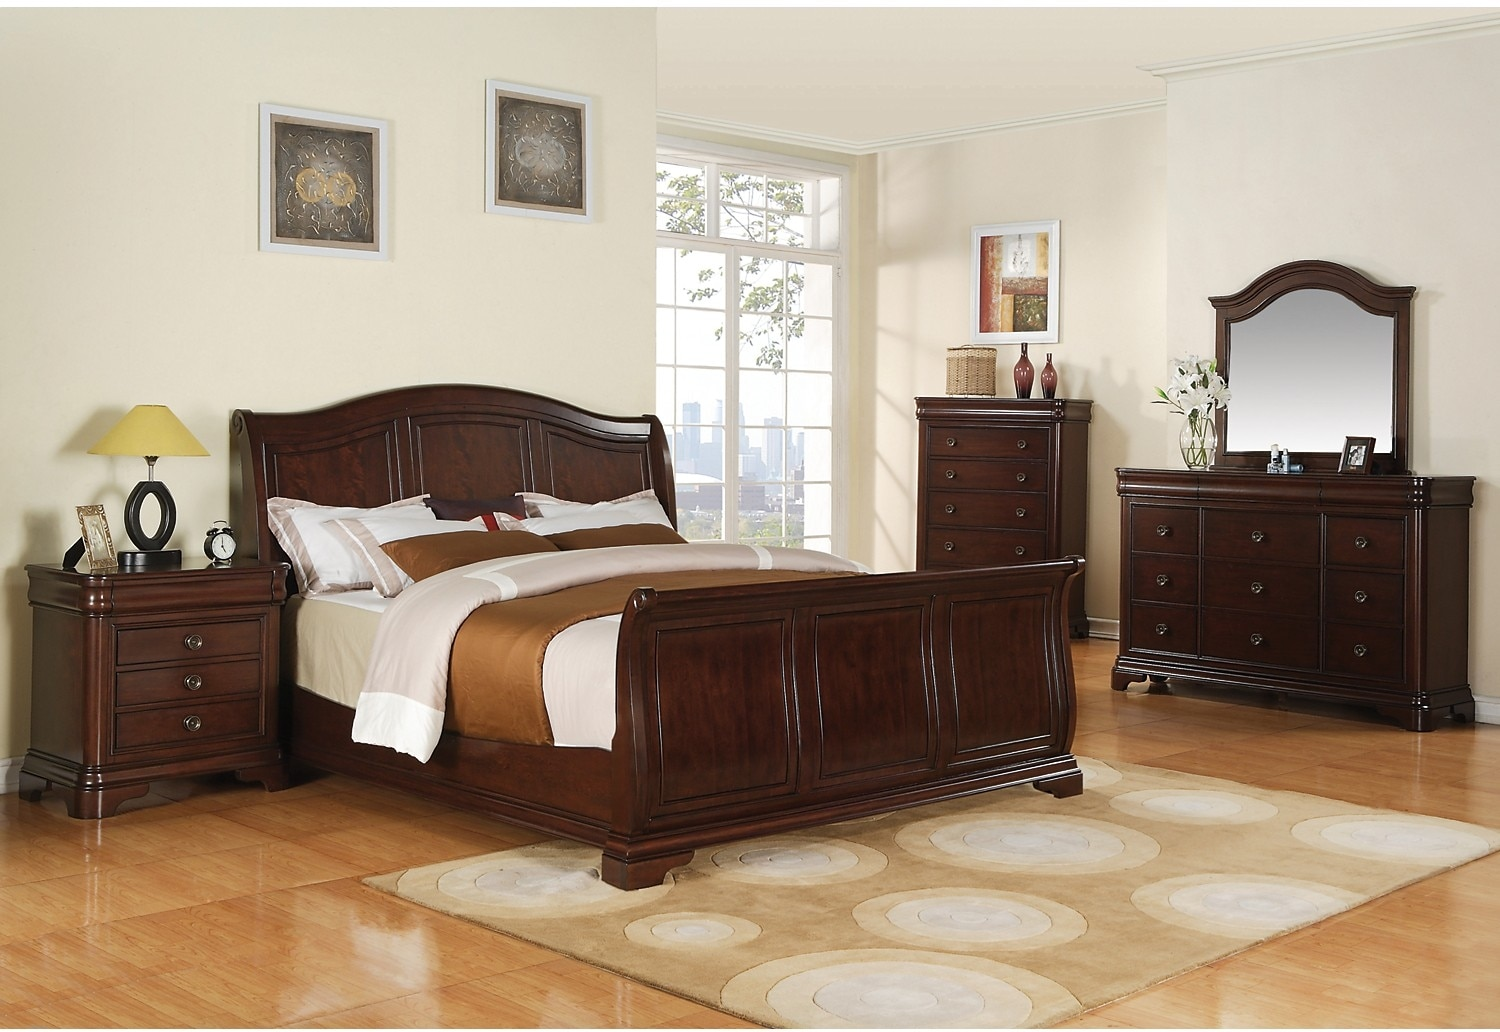 Queen Bedroom Furniture Sets Cameron 7 Piece Queen Bedroom Set The Brick